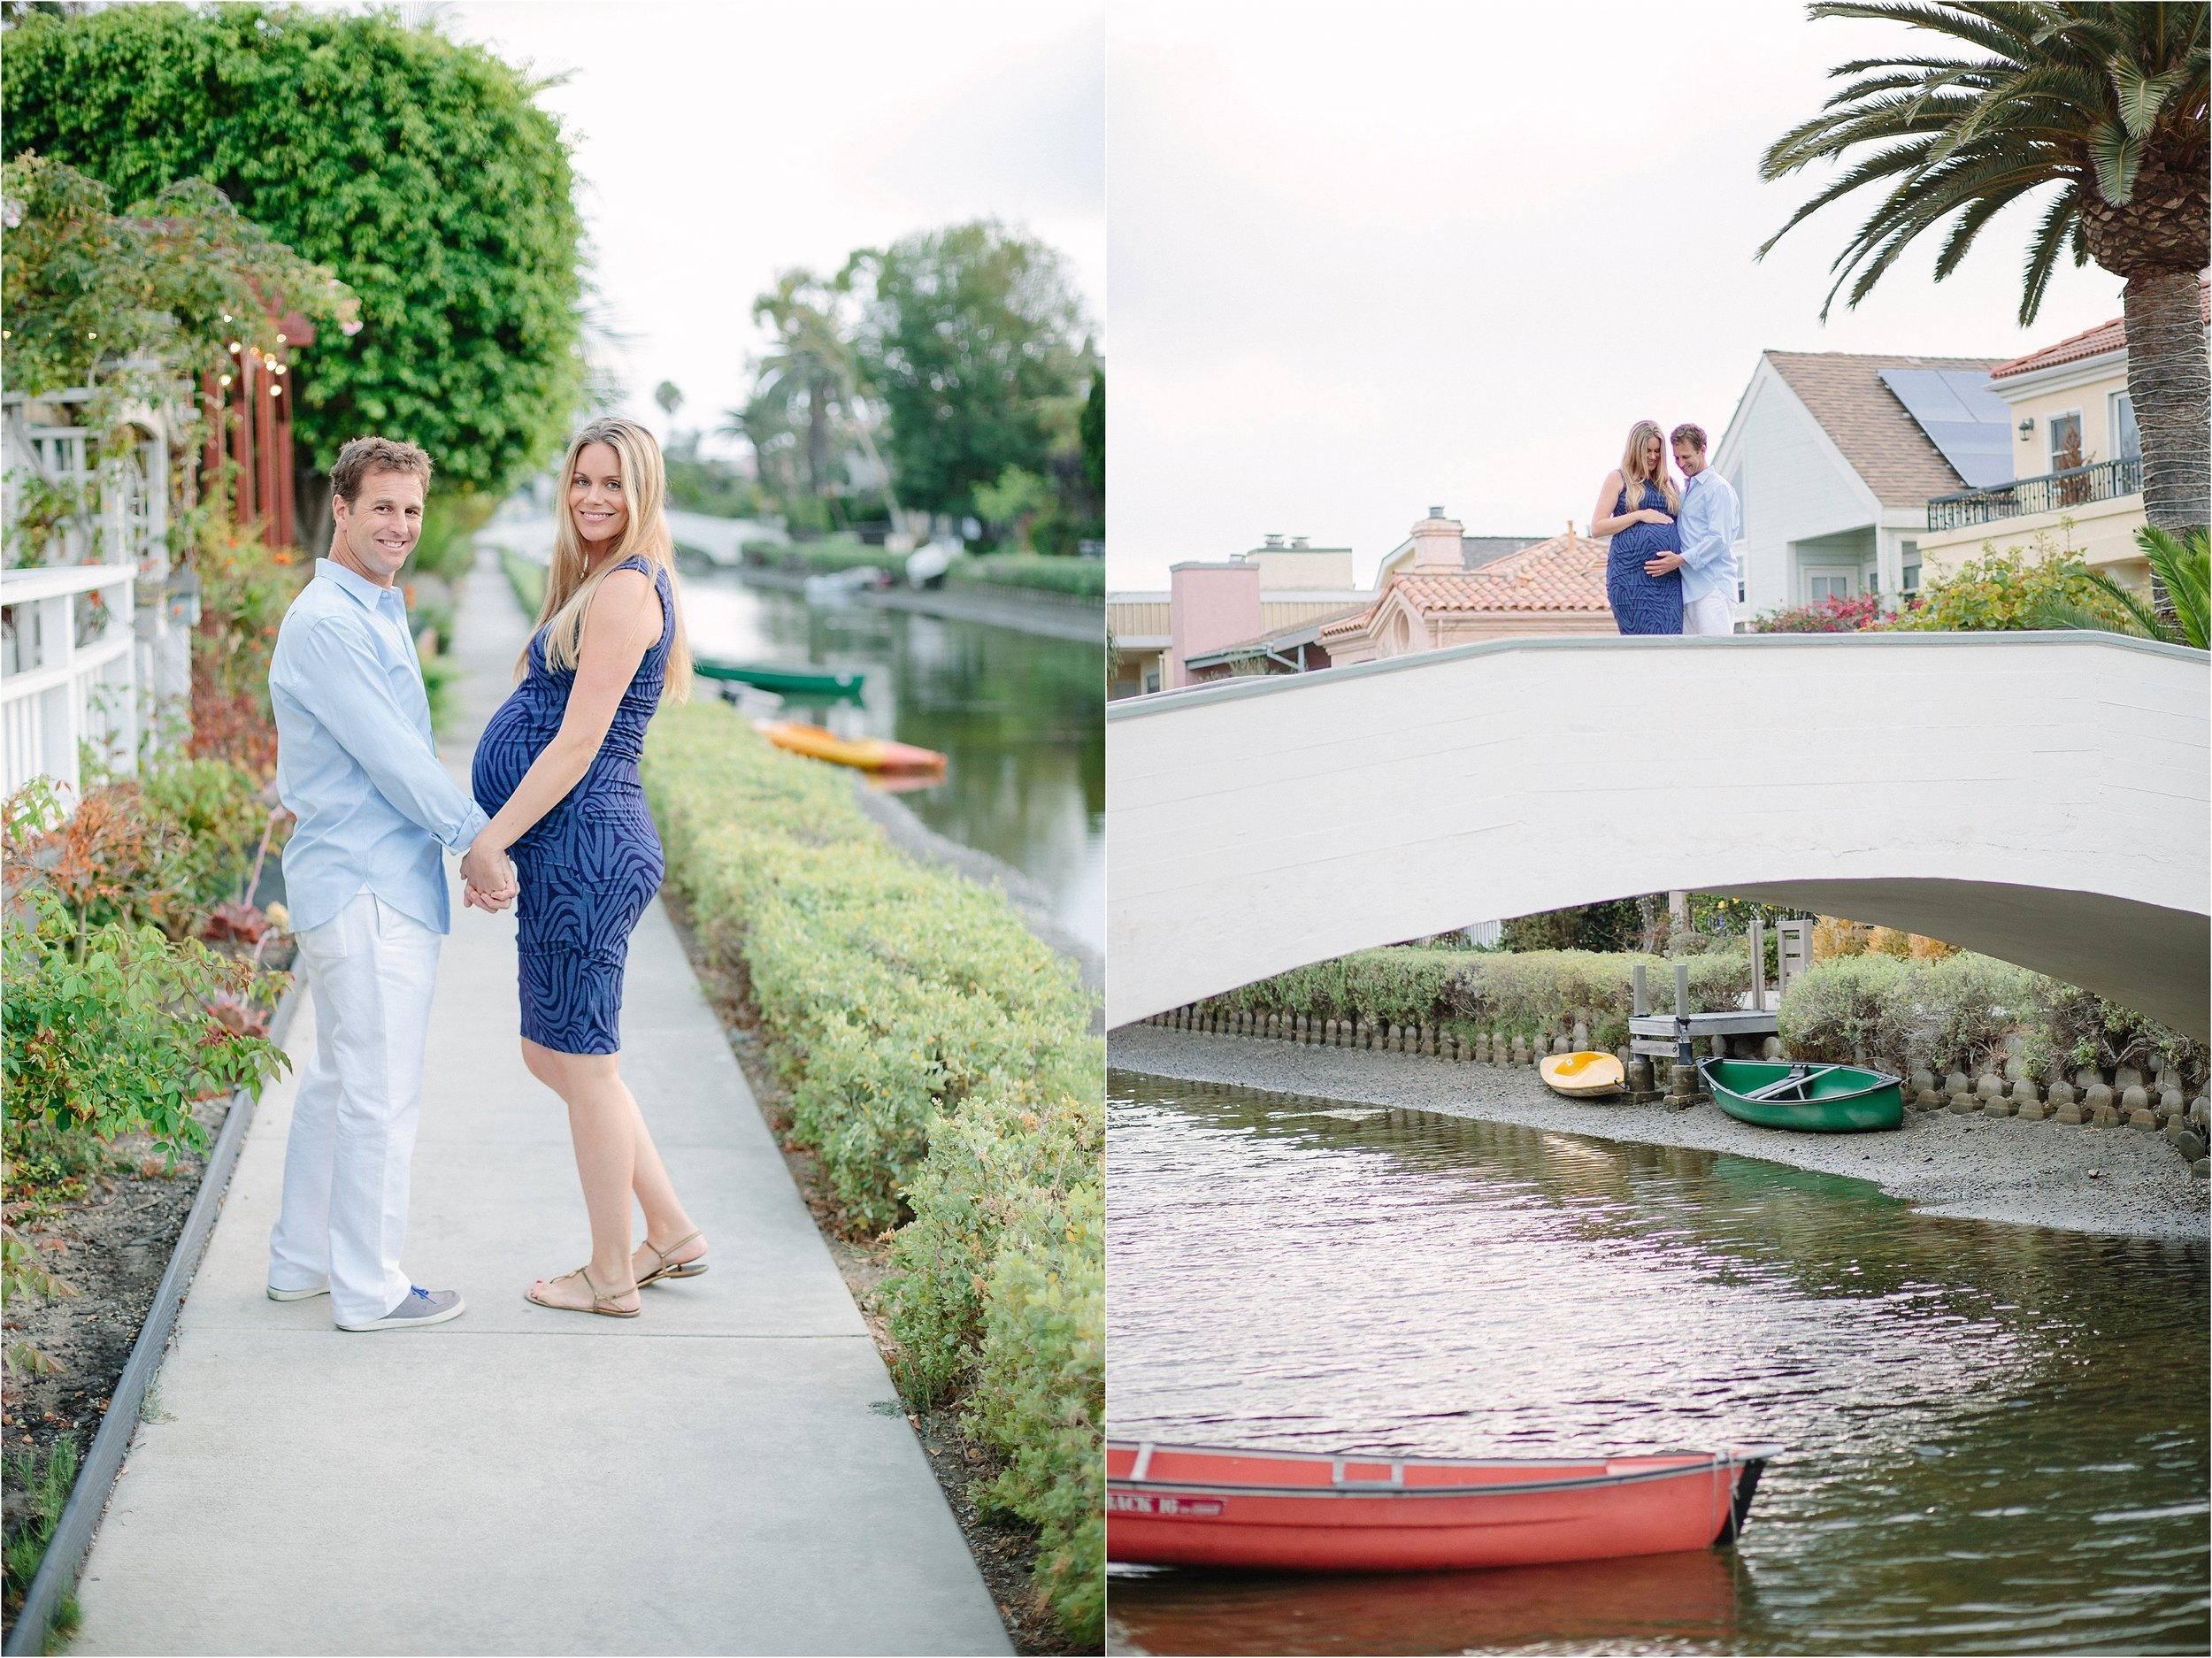 Venice Canals Maternity Photo